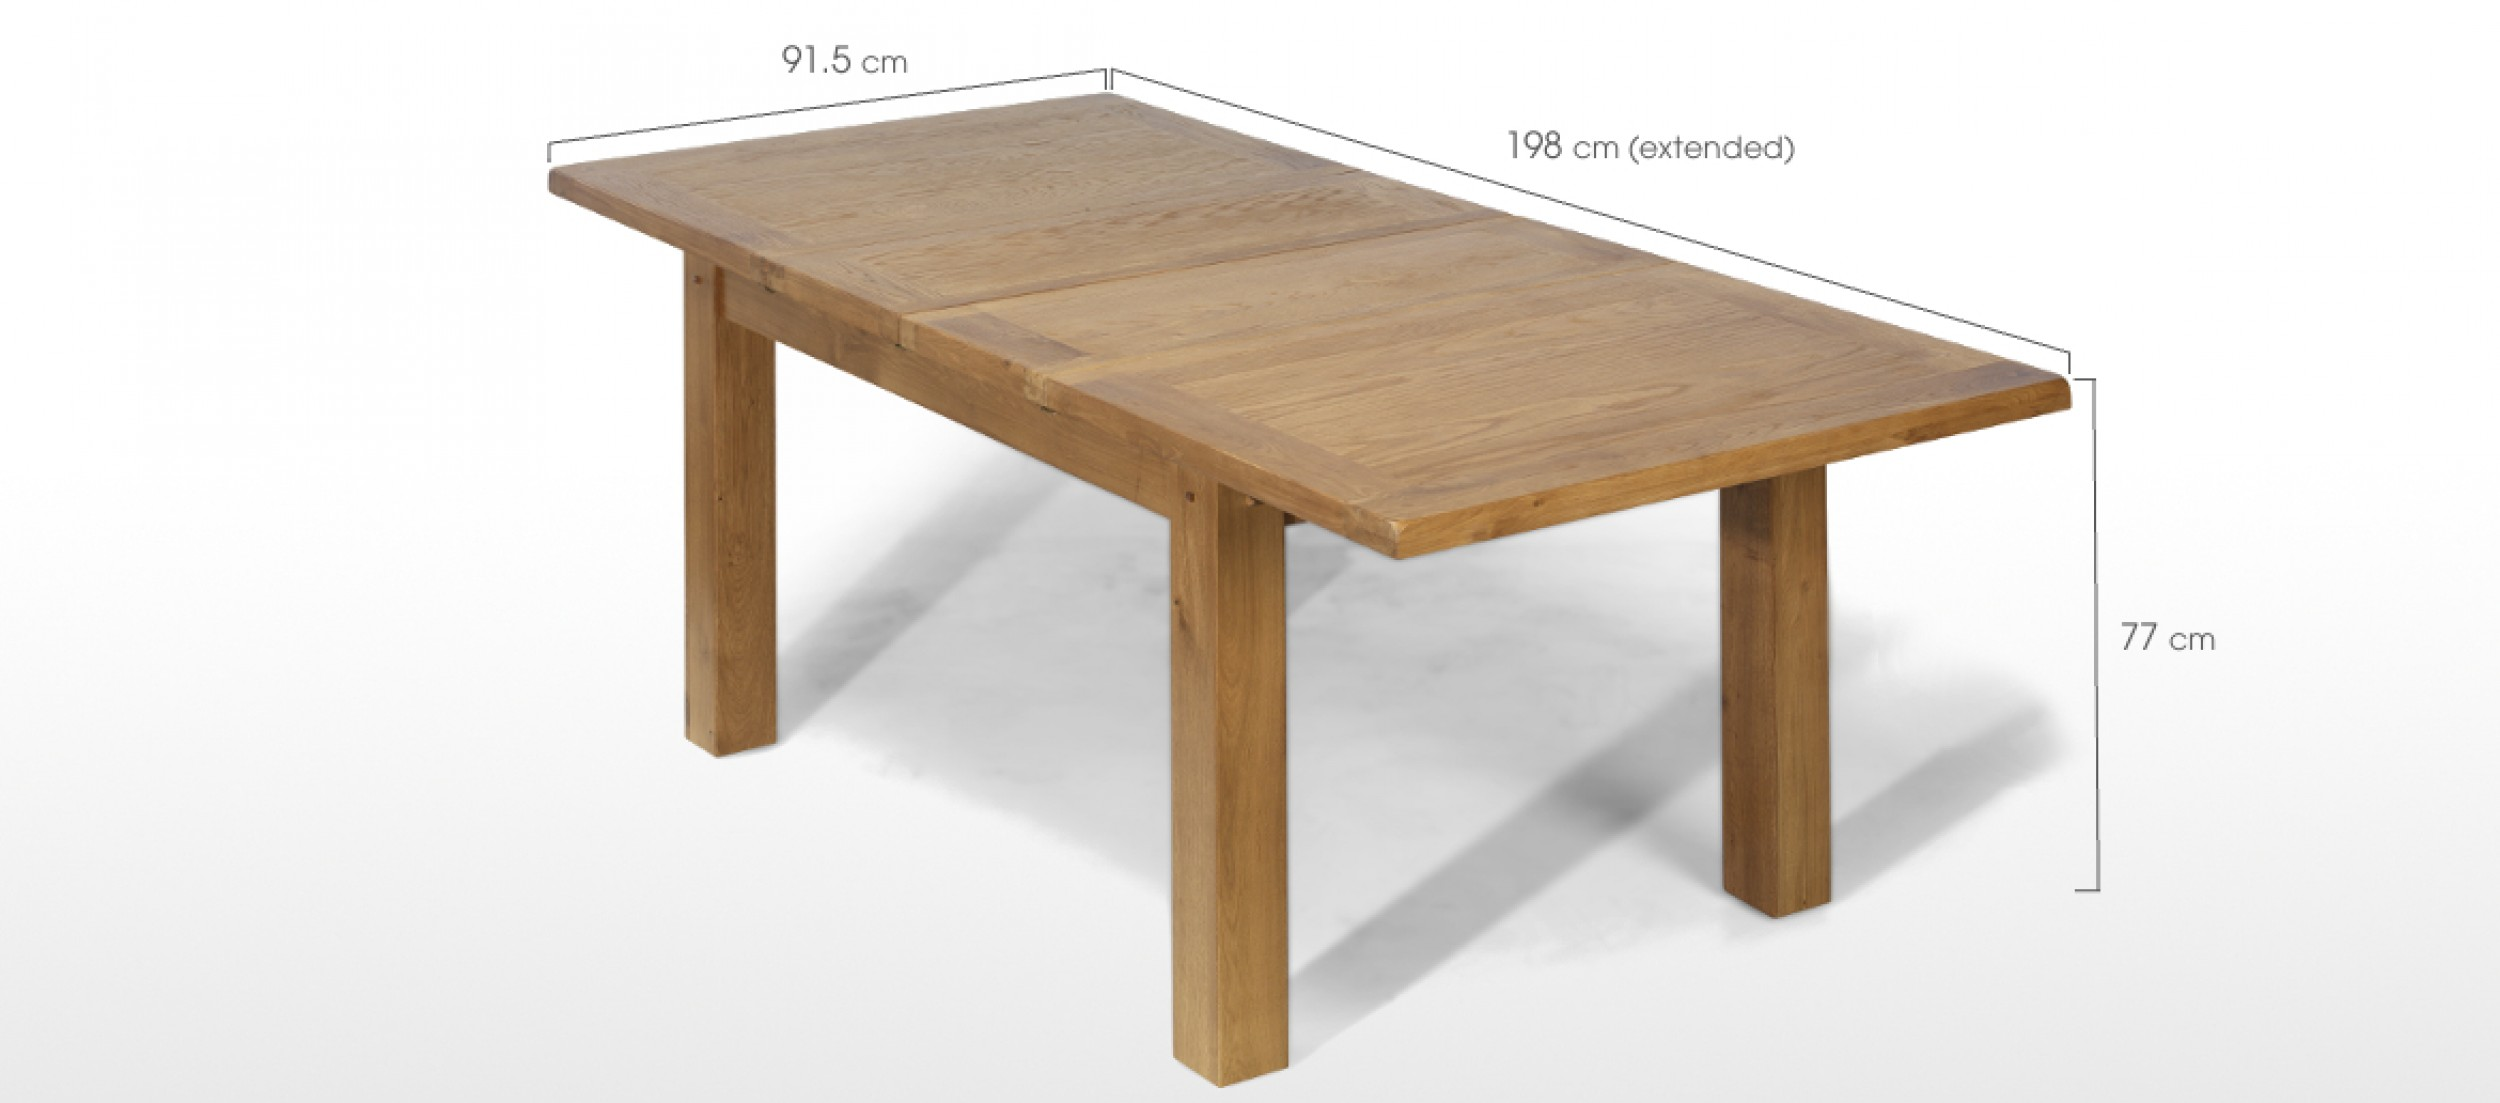 Rustic oak 132 198 cm extending dining table quercus living for Dining table specifications